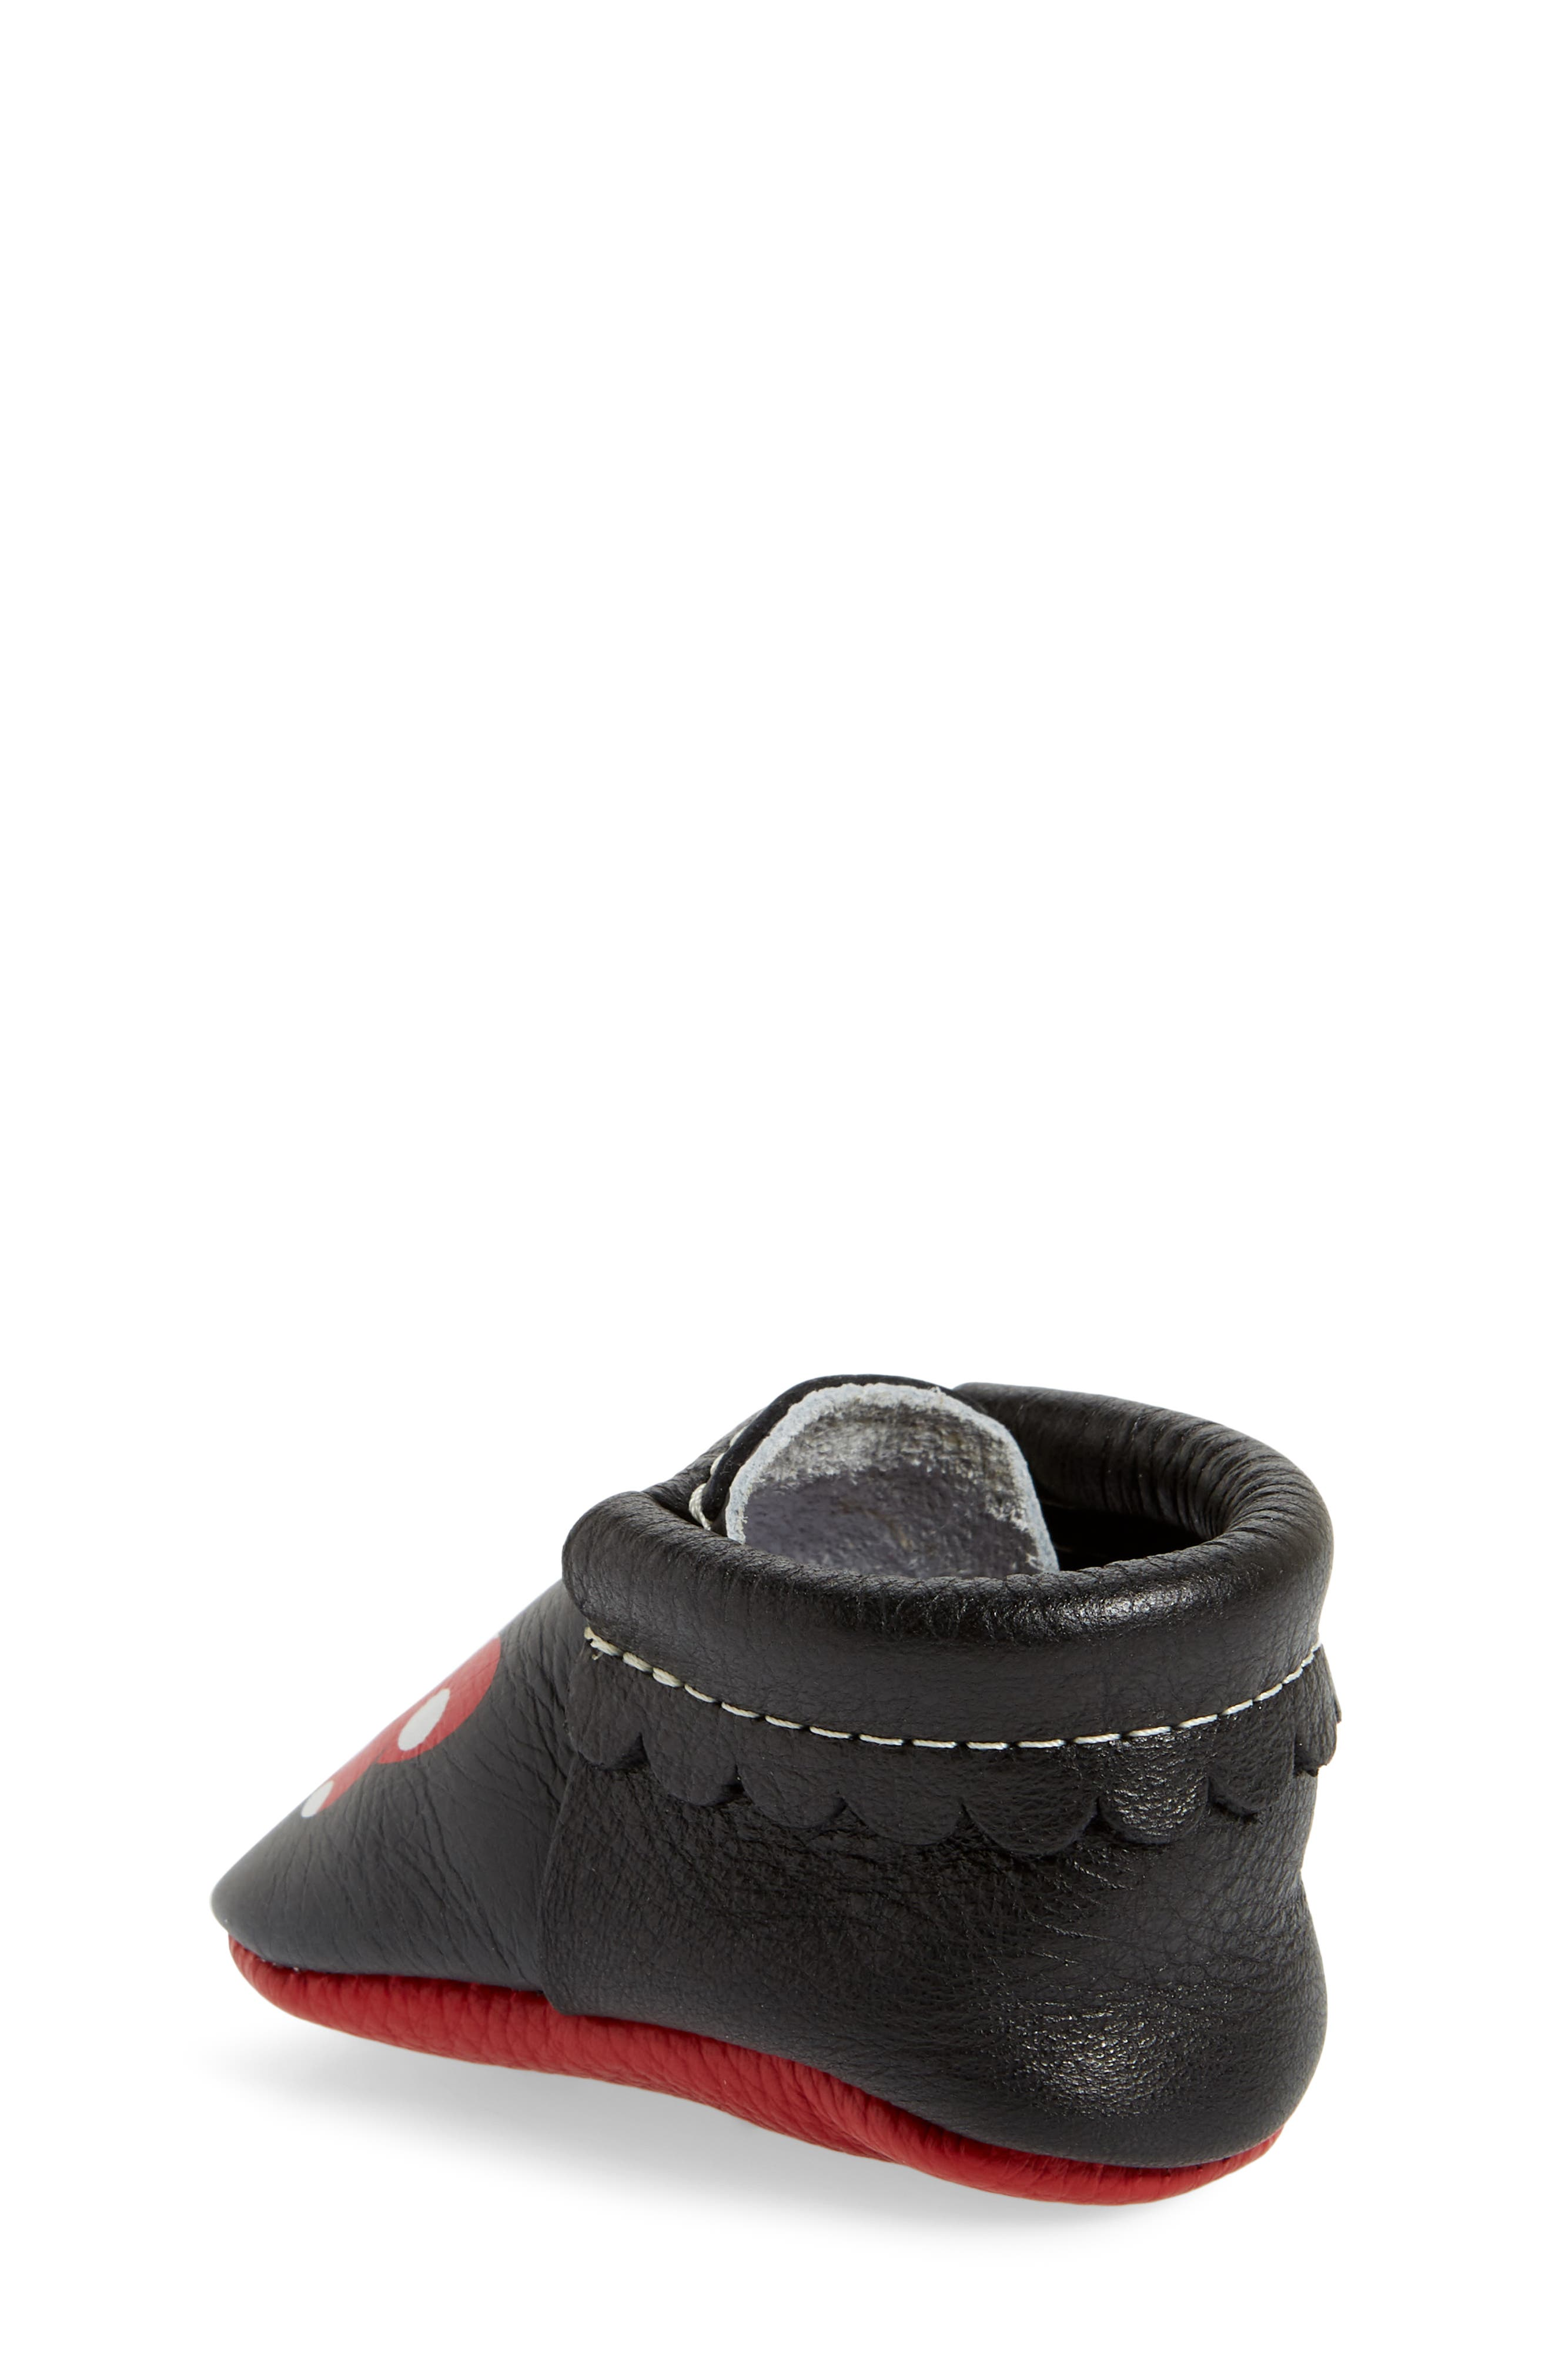 x Disney<sup>®</sup> Baby Minnie Mouse Crib Moccasin,                             Alternate thumbnail 2, color,                             Black Leather